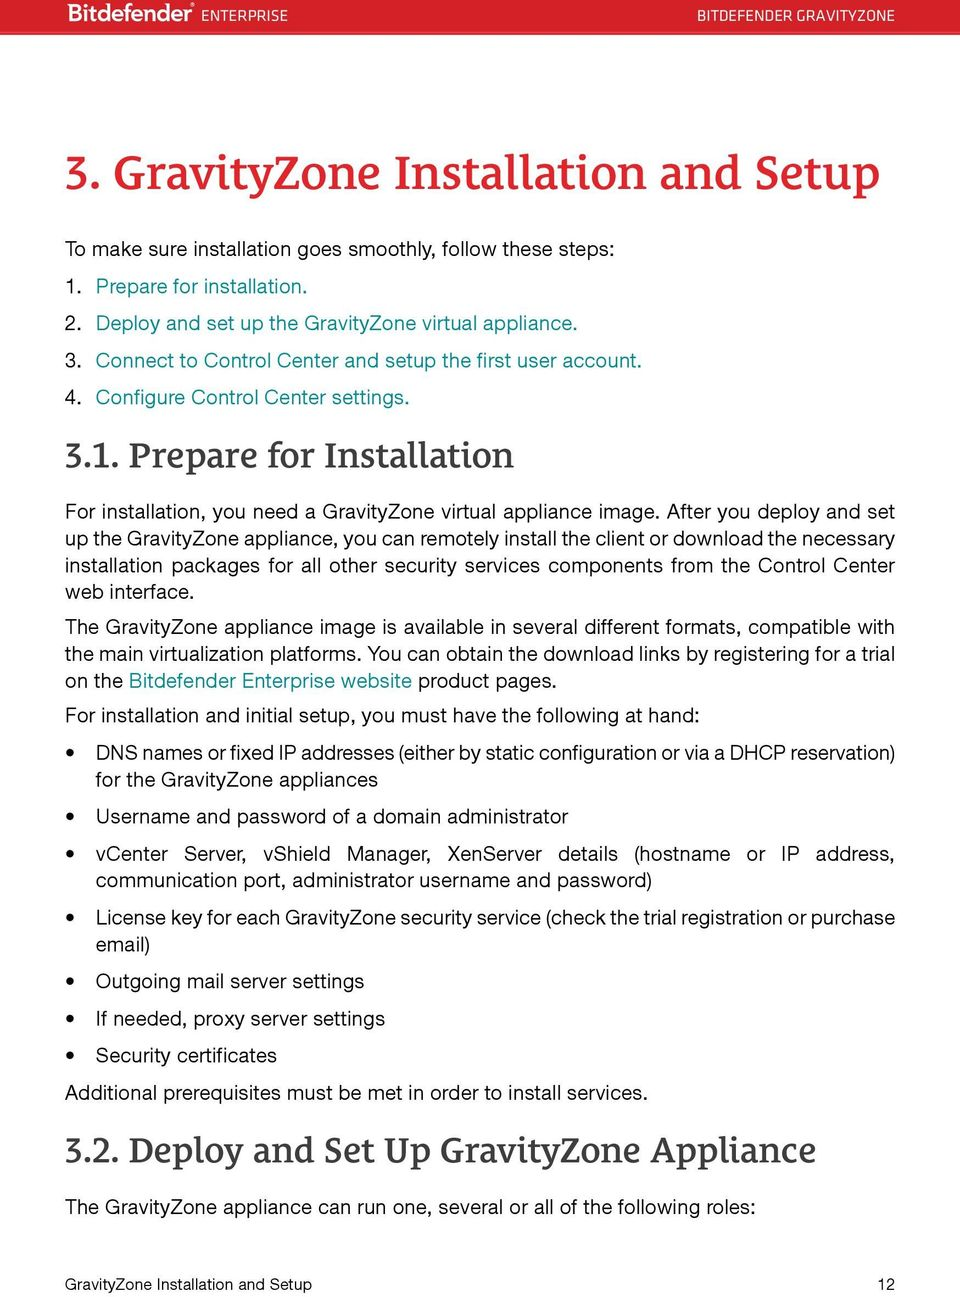 After you deploy and set up the GravityZone appliance, you can remotely install the client or download the necessary installation packages for all other security services components from the Control